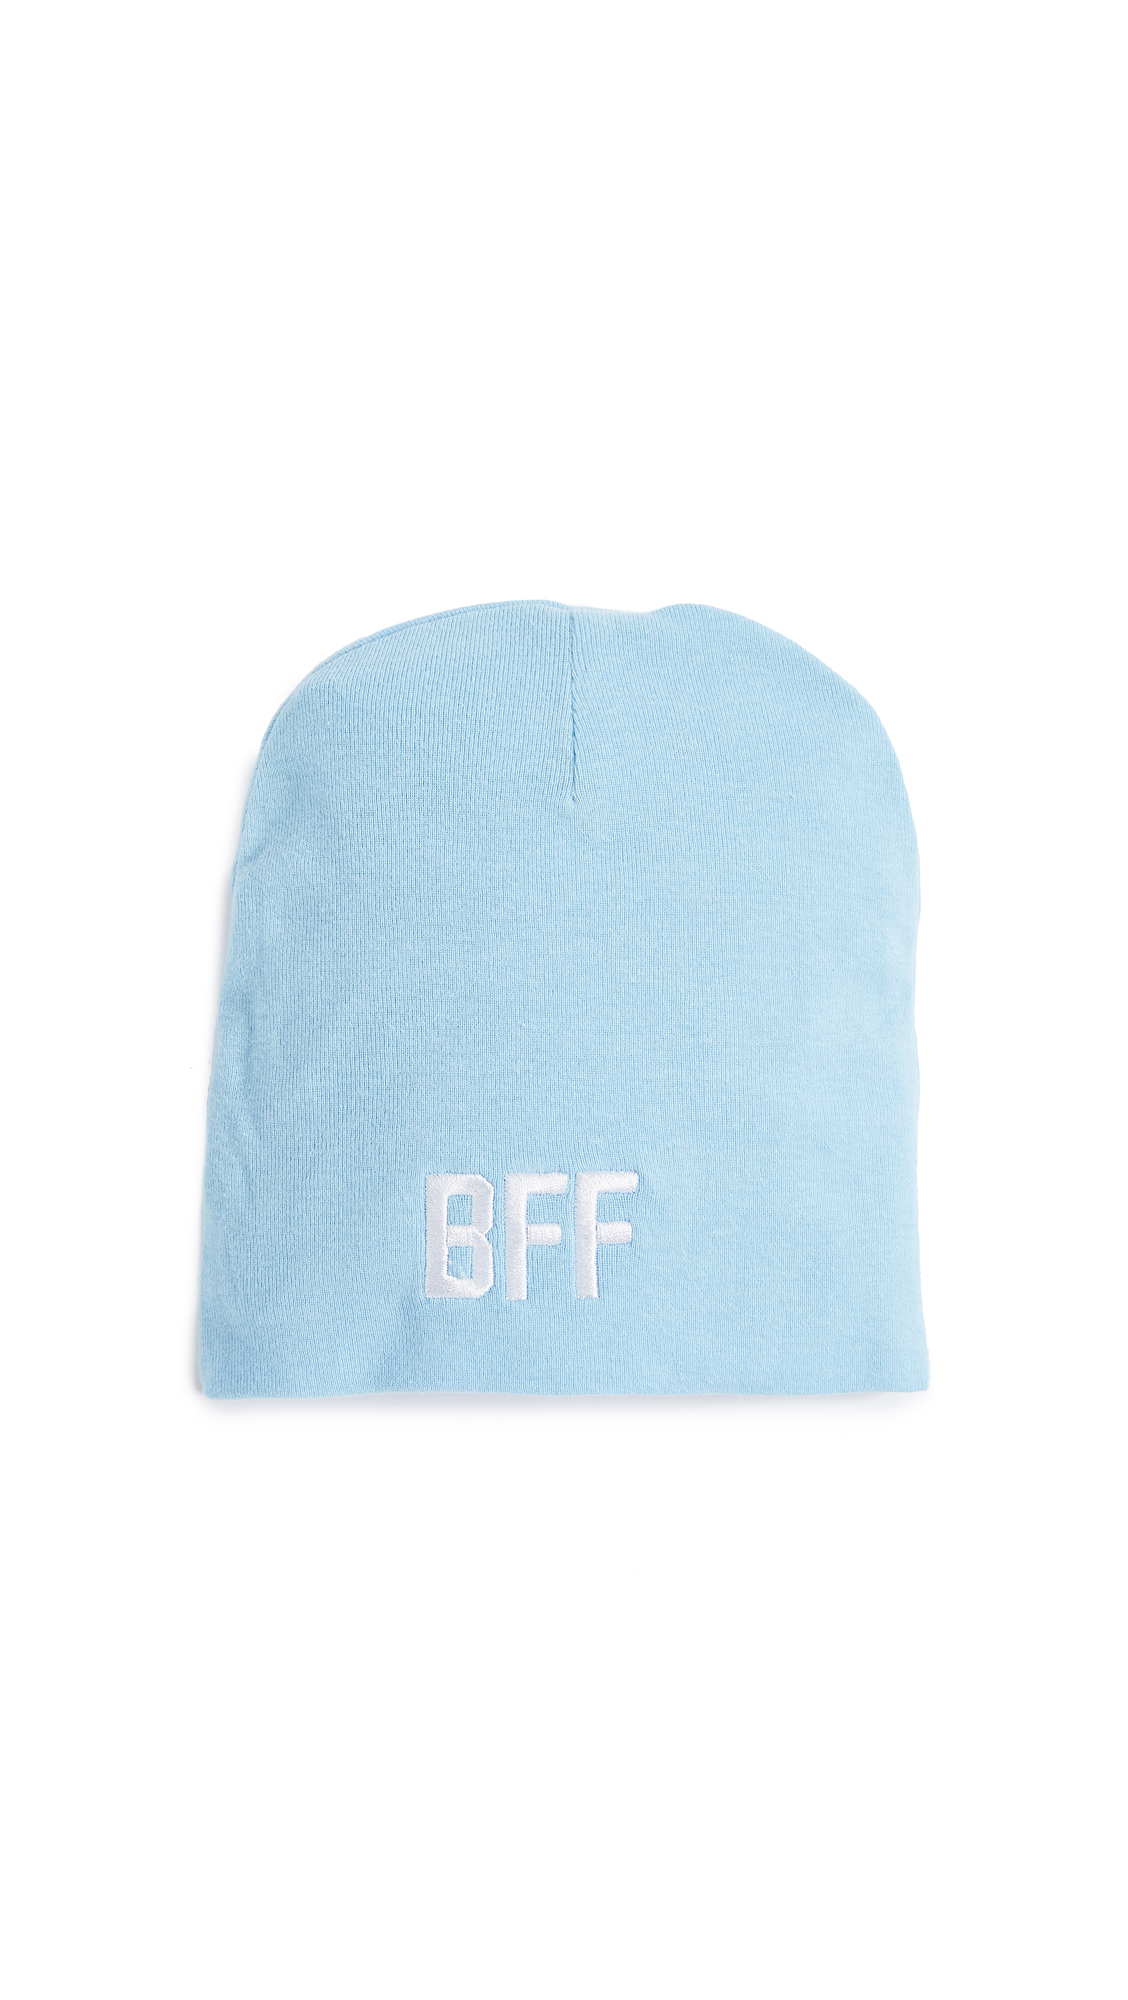 Private Party BFF Baby Hat - Blue